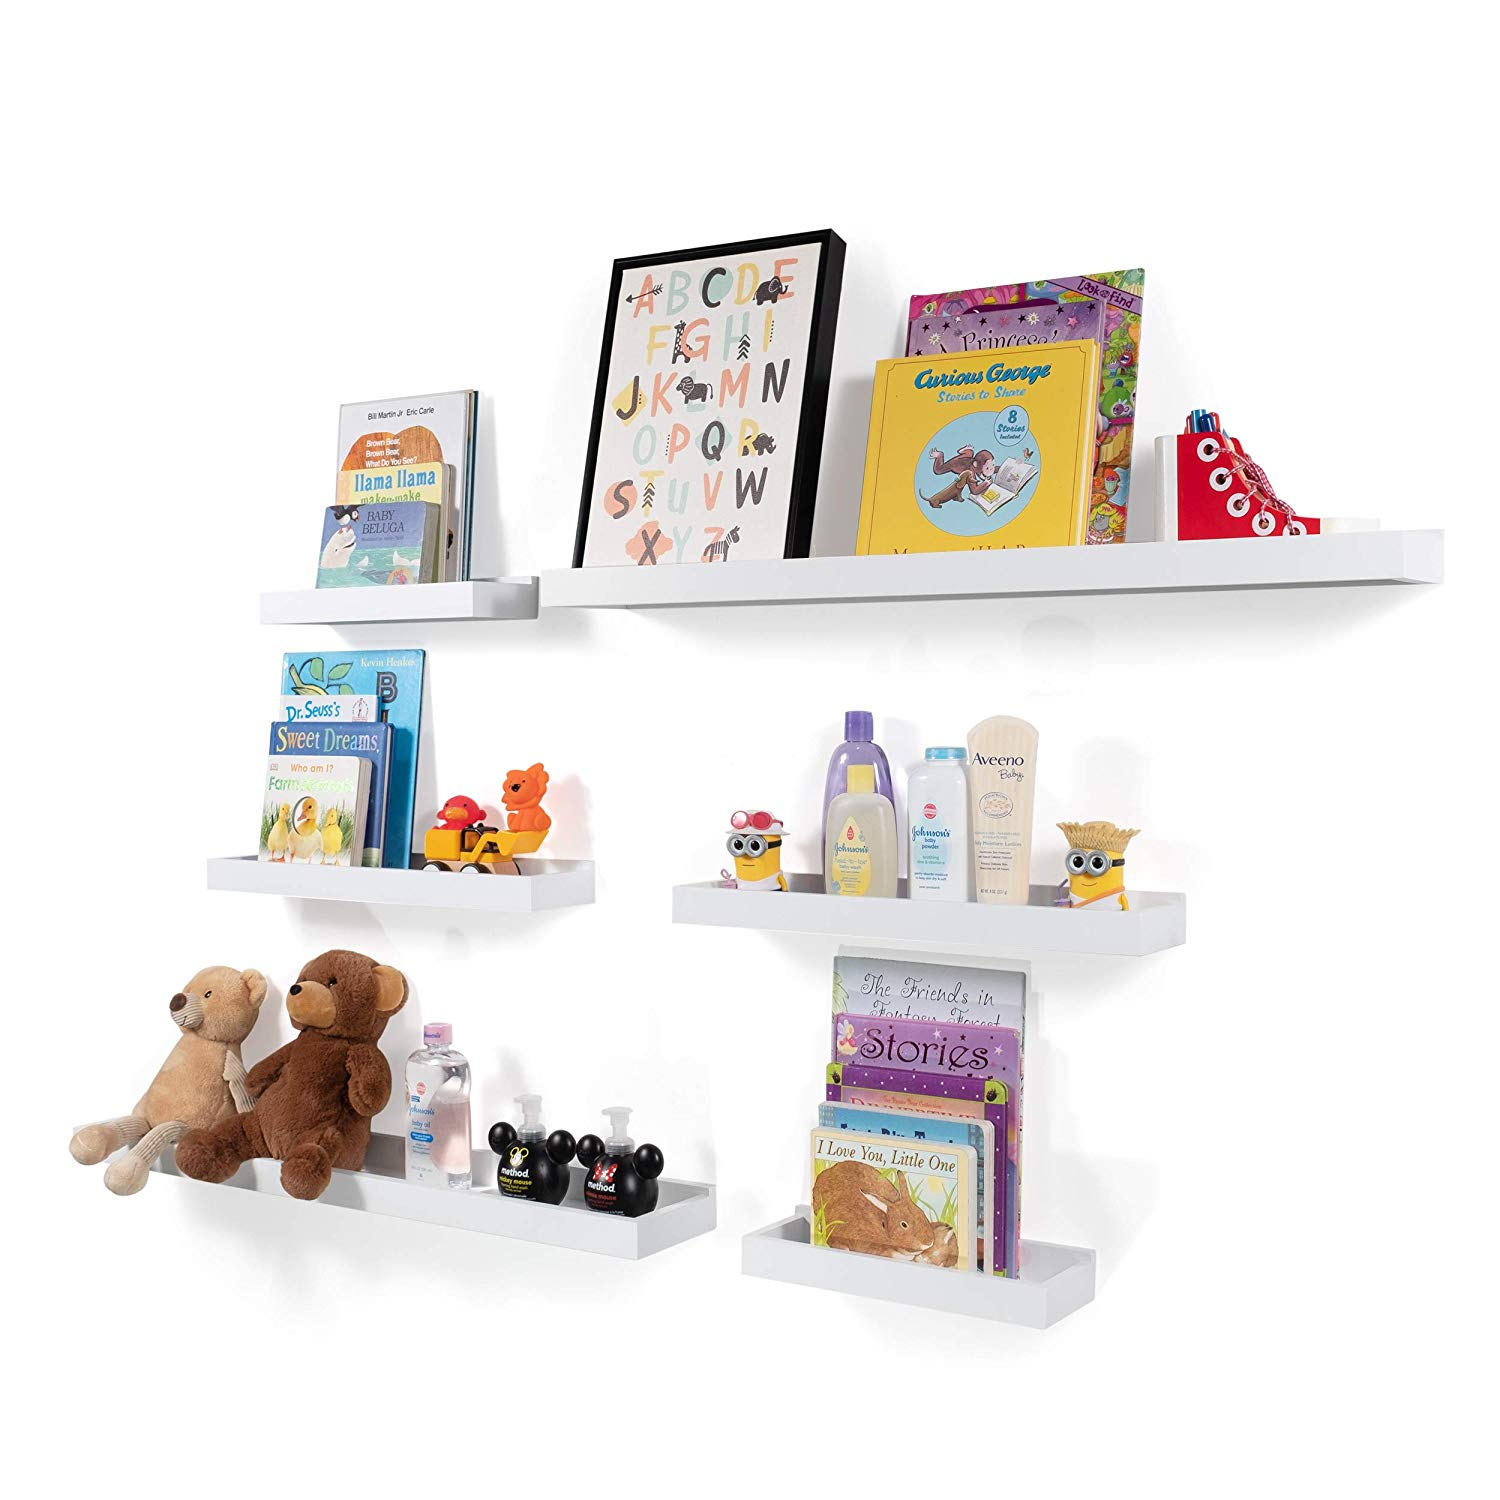 wallniture philly set varying sizes floating bookshelves nursery shelves trays and display bookcase modern wood shelving for kids room wall ikea shelf hack units bathroom ladder